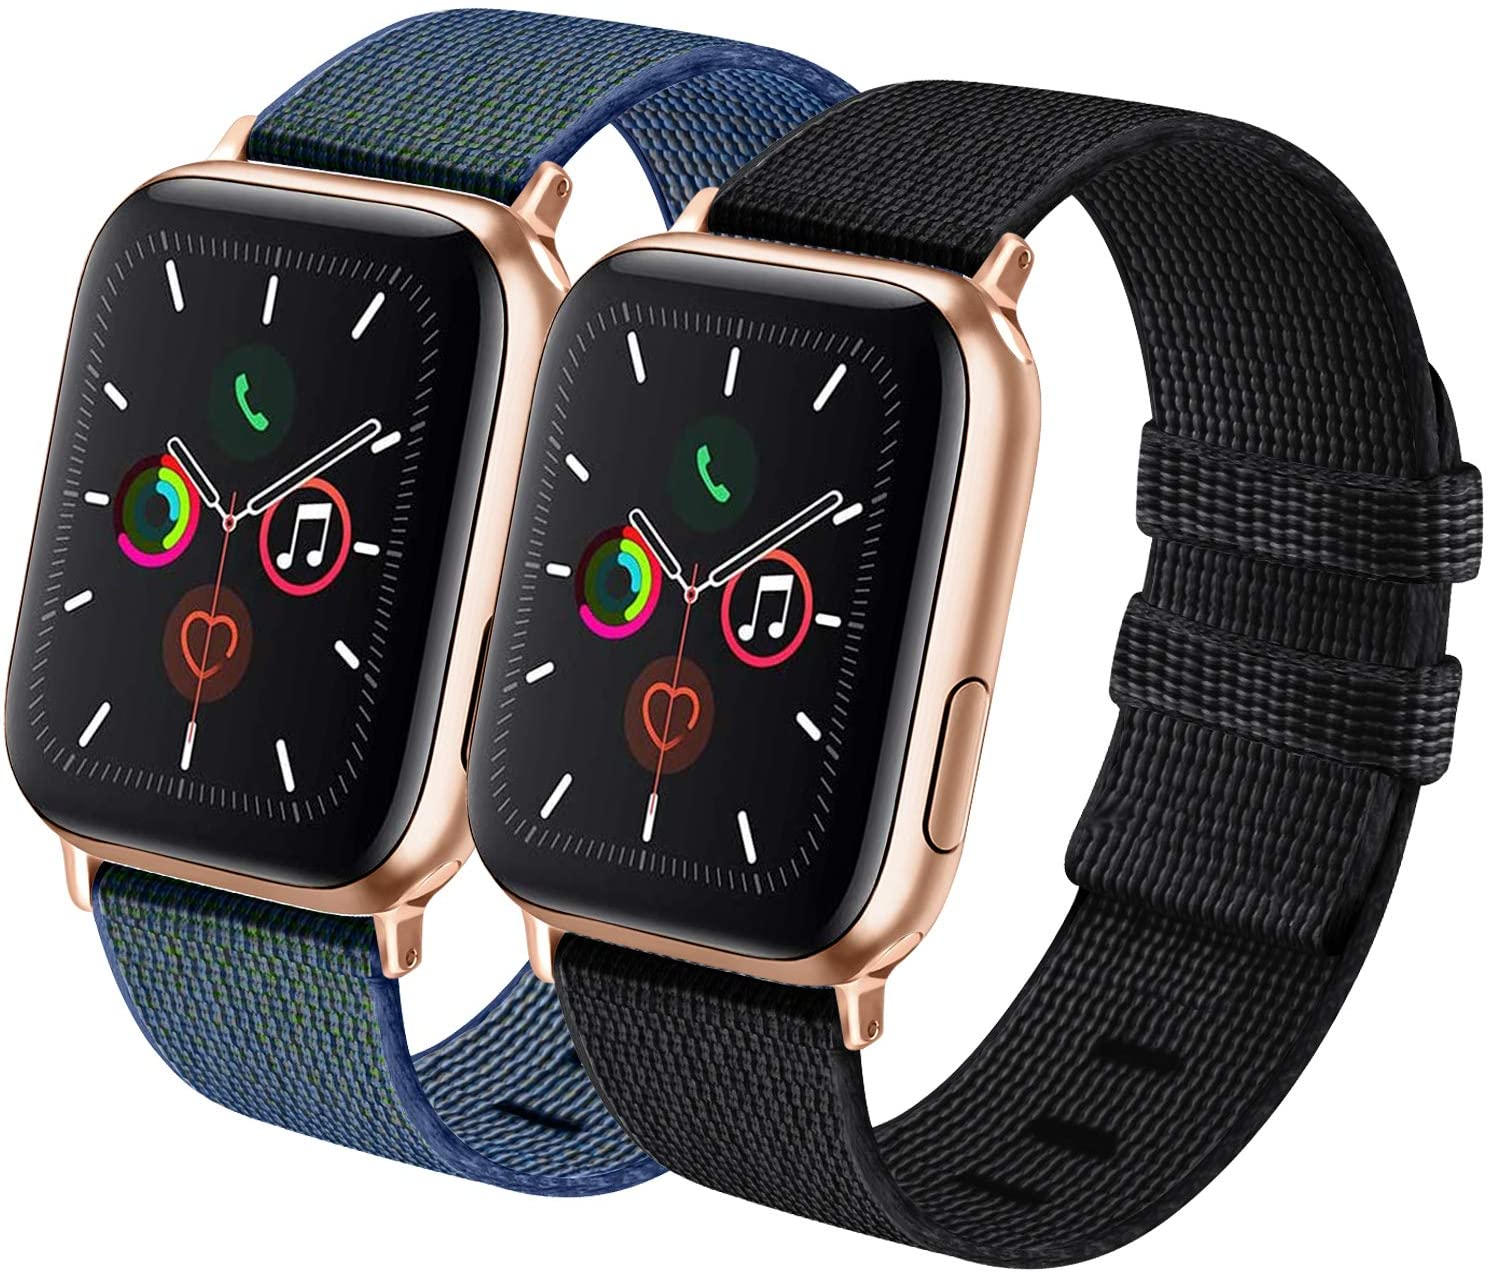 IEOVIEE Nylon Bands Compatible for Apple Watch Band 38mm 40mm 42mm 44mm, Adjustable Soft Lightweight Breathable Replacement Bands for Series 5 4 3 2 1 (Black+Tahoe Blue, 42mm/44mm)